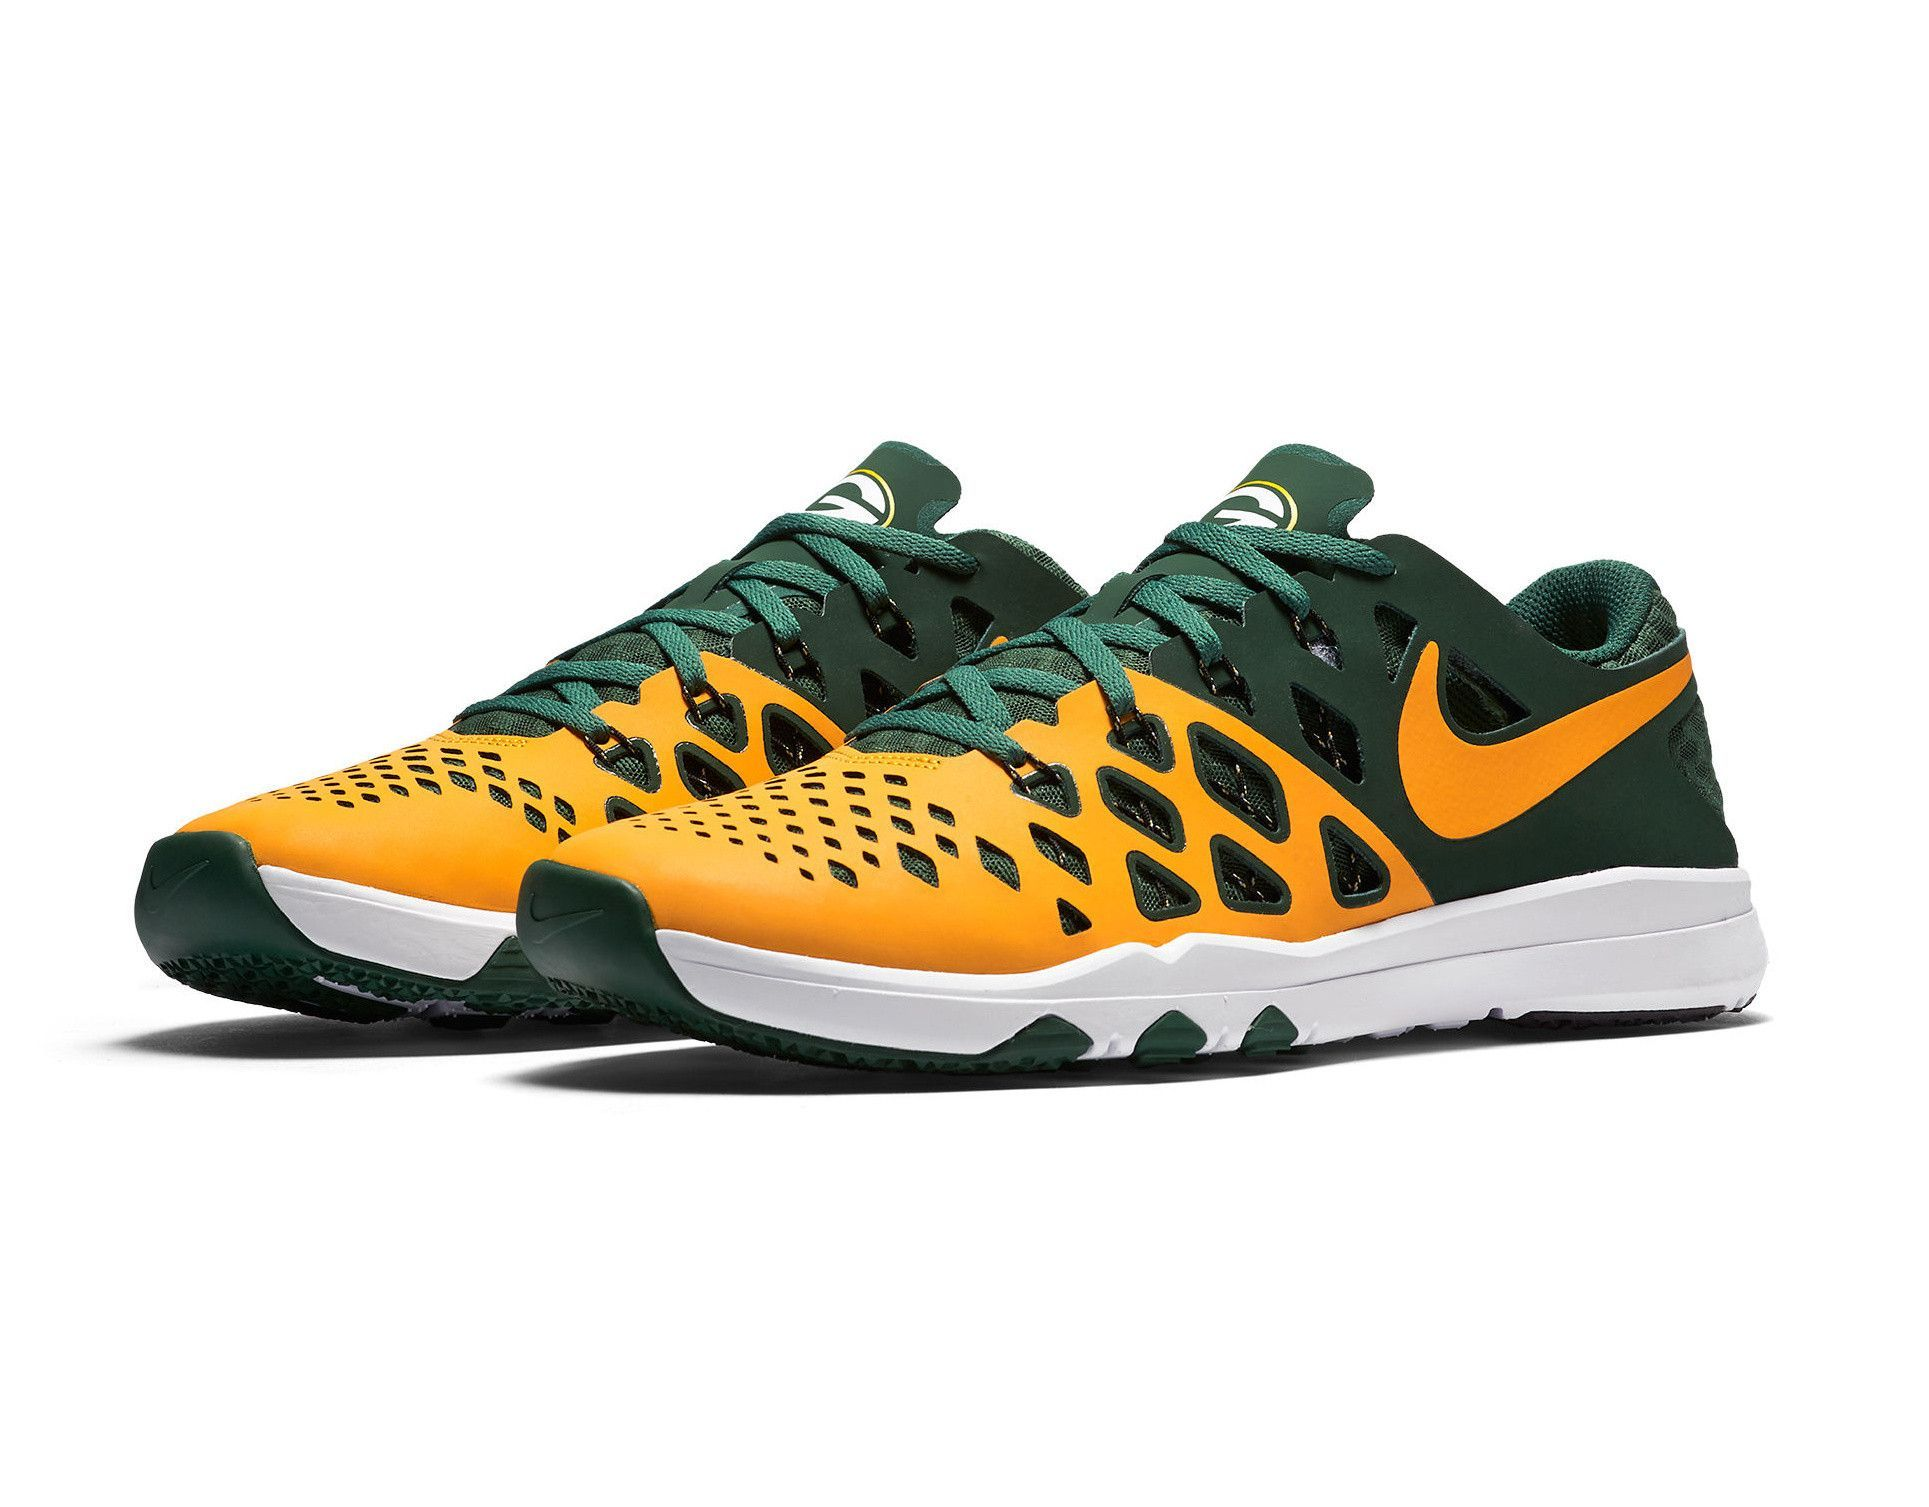 Green Bay Packers Nike Train Speed 4 Nfl Shoes Nfl Shoes Green Bay Packers Nike